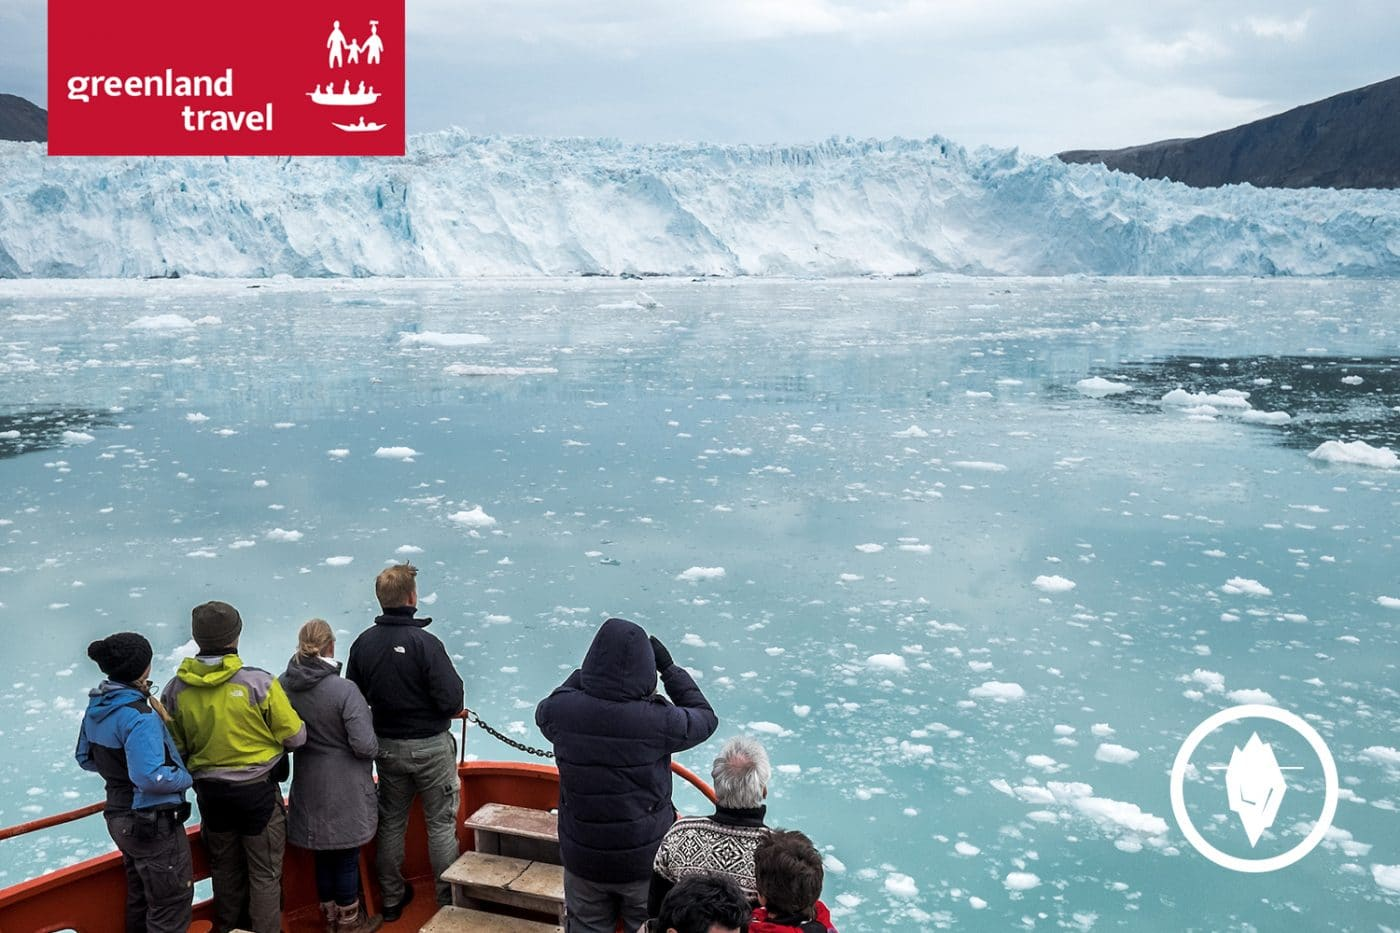 Greenland Travel: Summer paradise in the Arctic wilderness